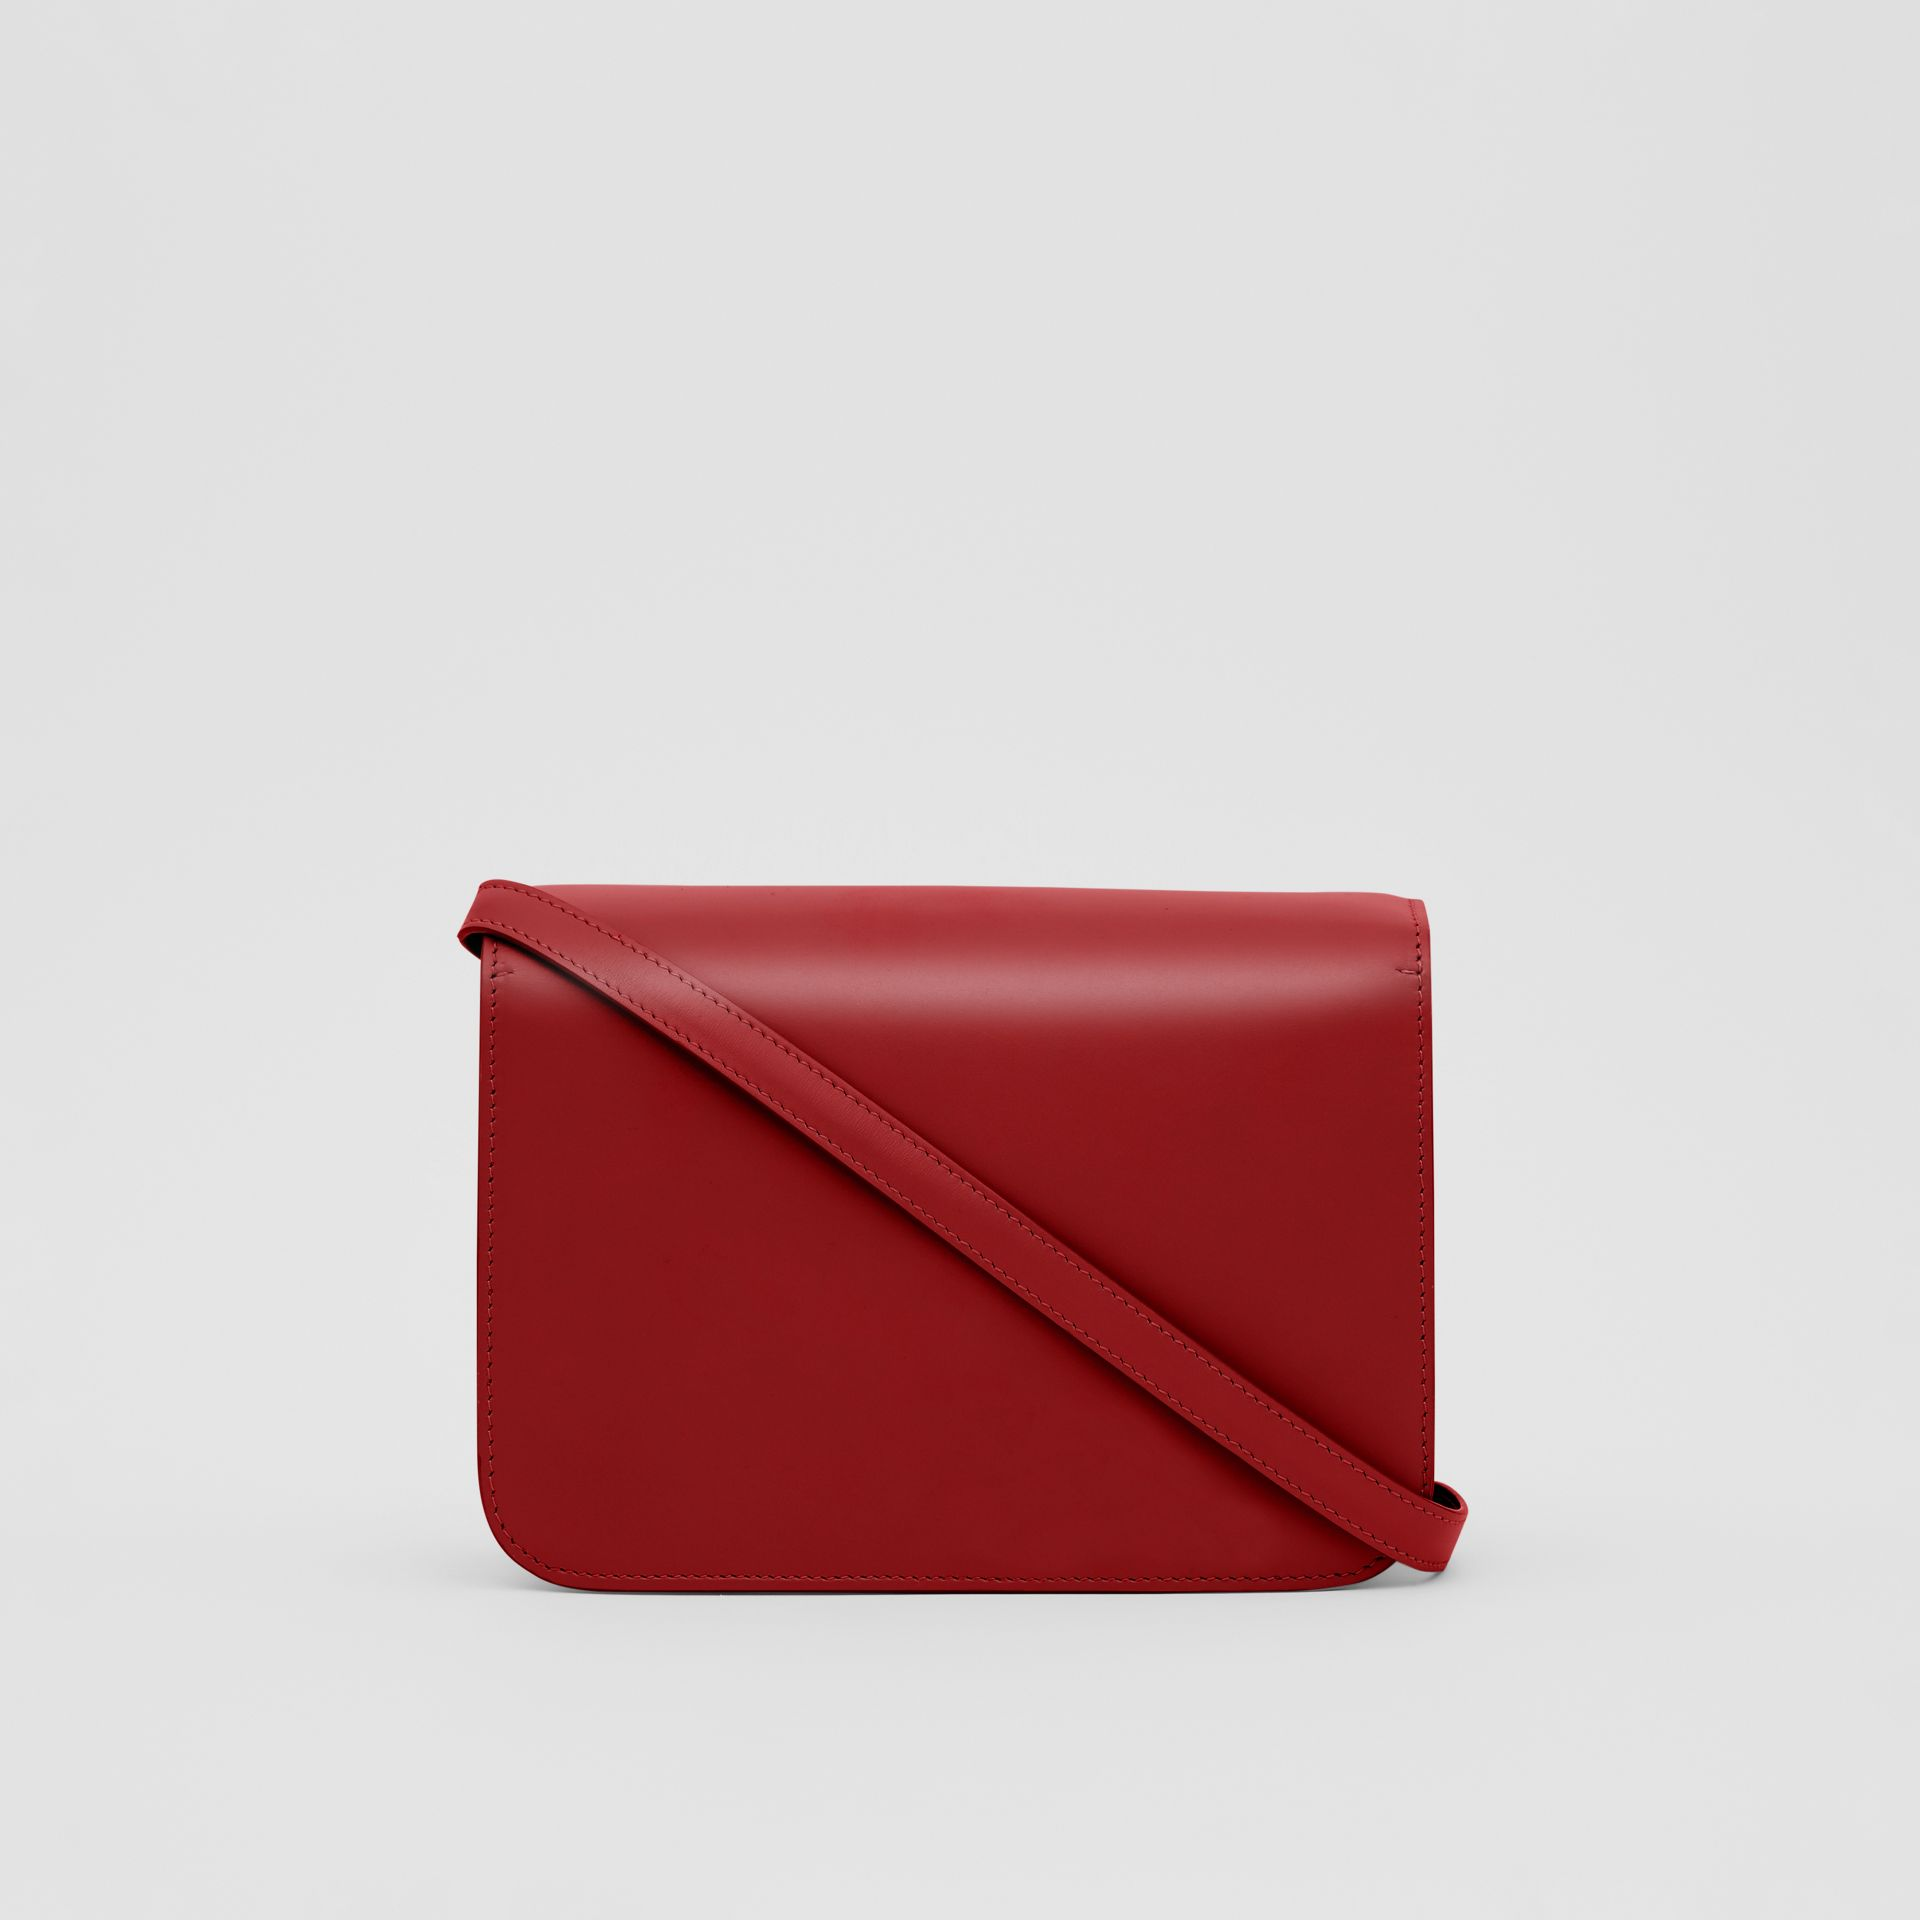 Small Leather TB Bag in Dark Carmine - Women | Burberry - gallery image 5